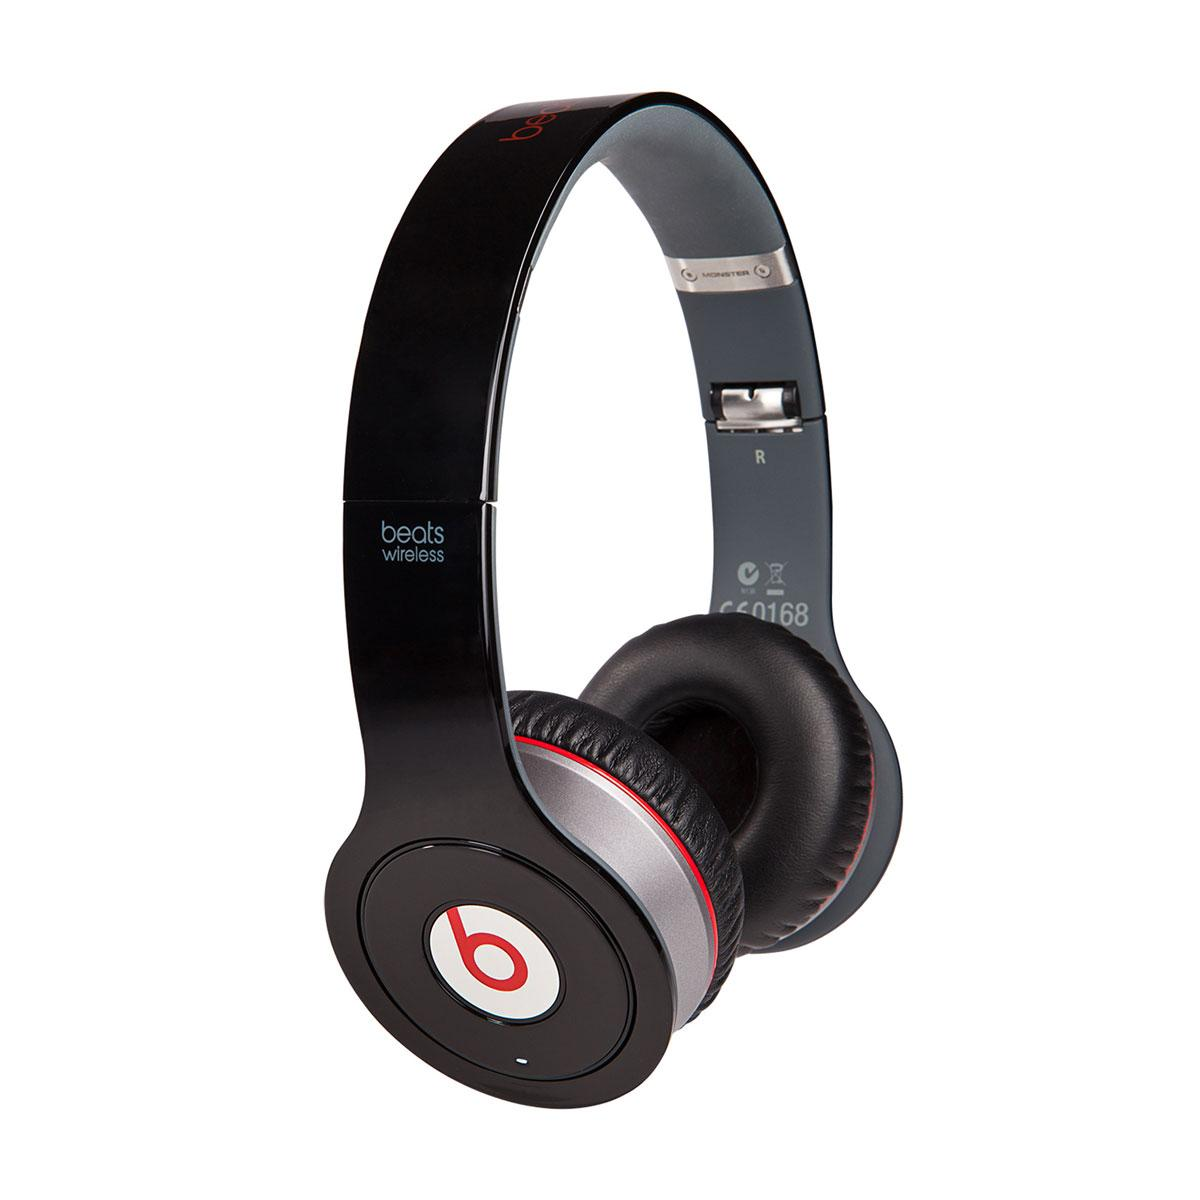 Casque Beats Wireless - Noir